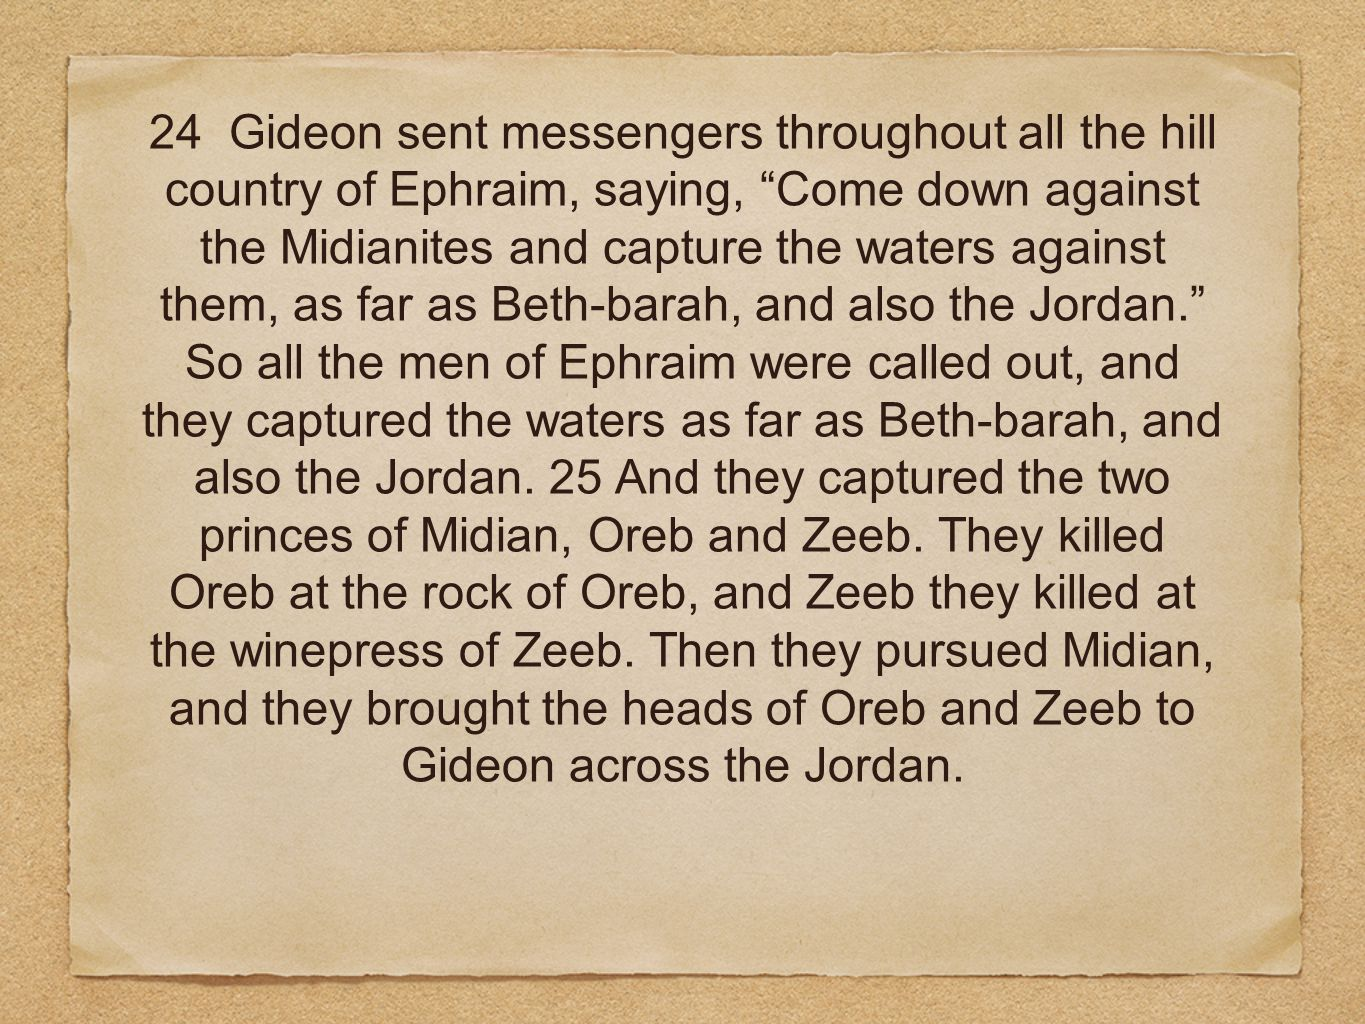 24 Gideon sent messengers throughout all the hill country of Ephraim, saying, Come down against the Midianites and capture the waters against them, as far as Beth-barah, and also the Jordan. So all the men of Ephraim were called out, and they captured the waters as far as Beth-barah, and also the Jordan.